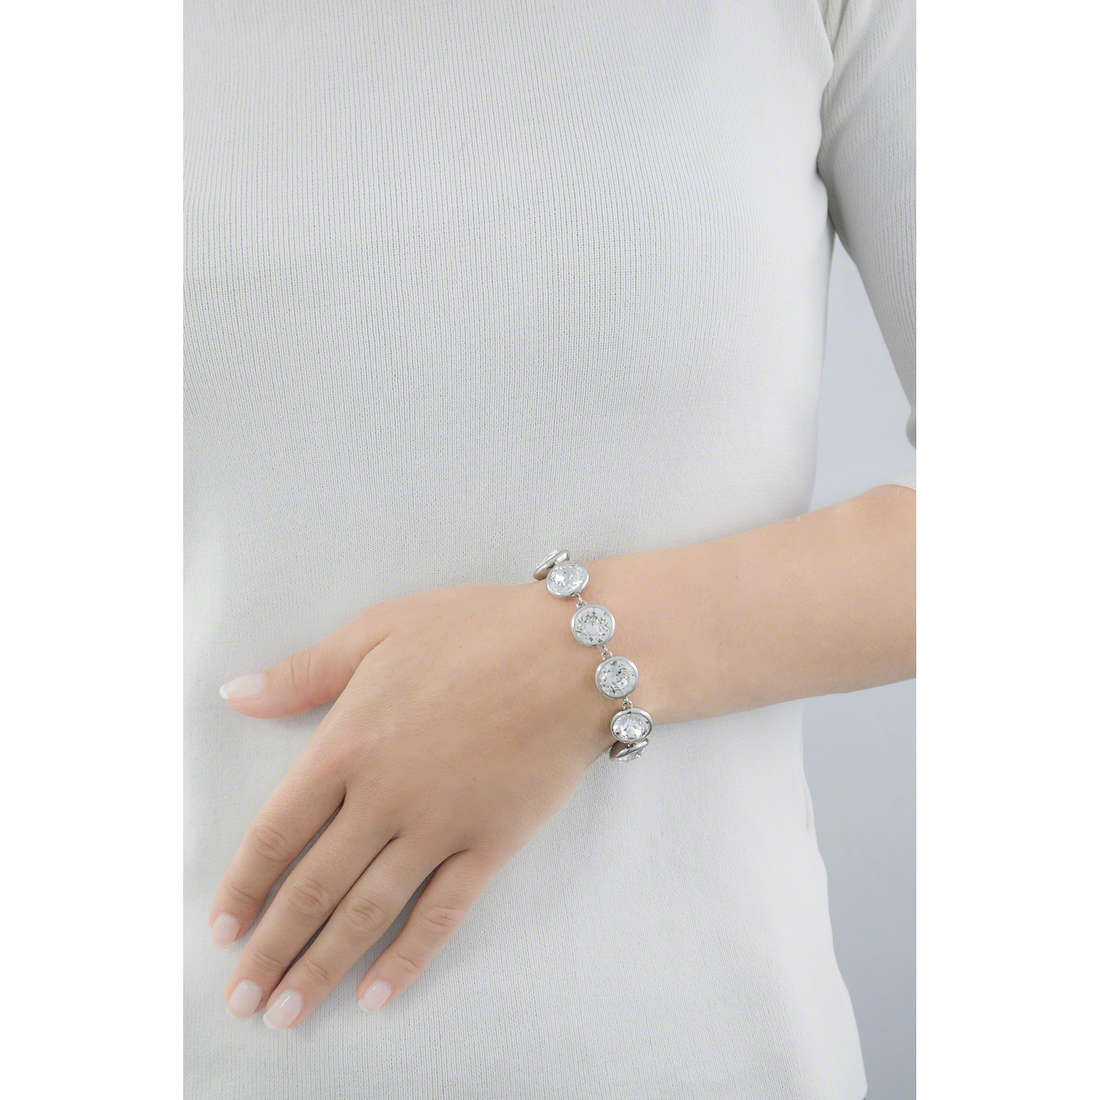 Brosway bracelets B-Tring woman BTN46 photo wearing